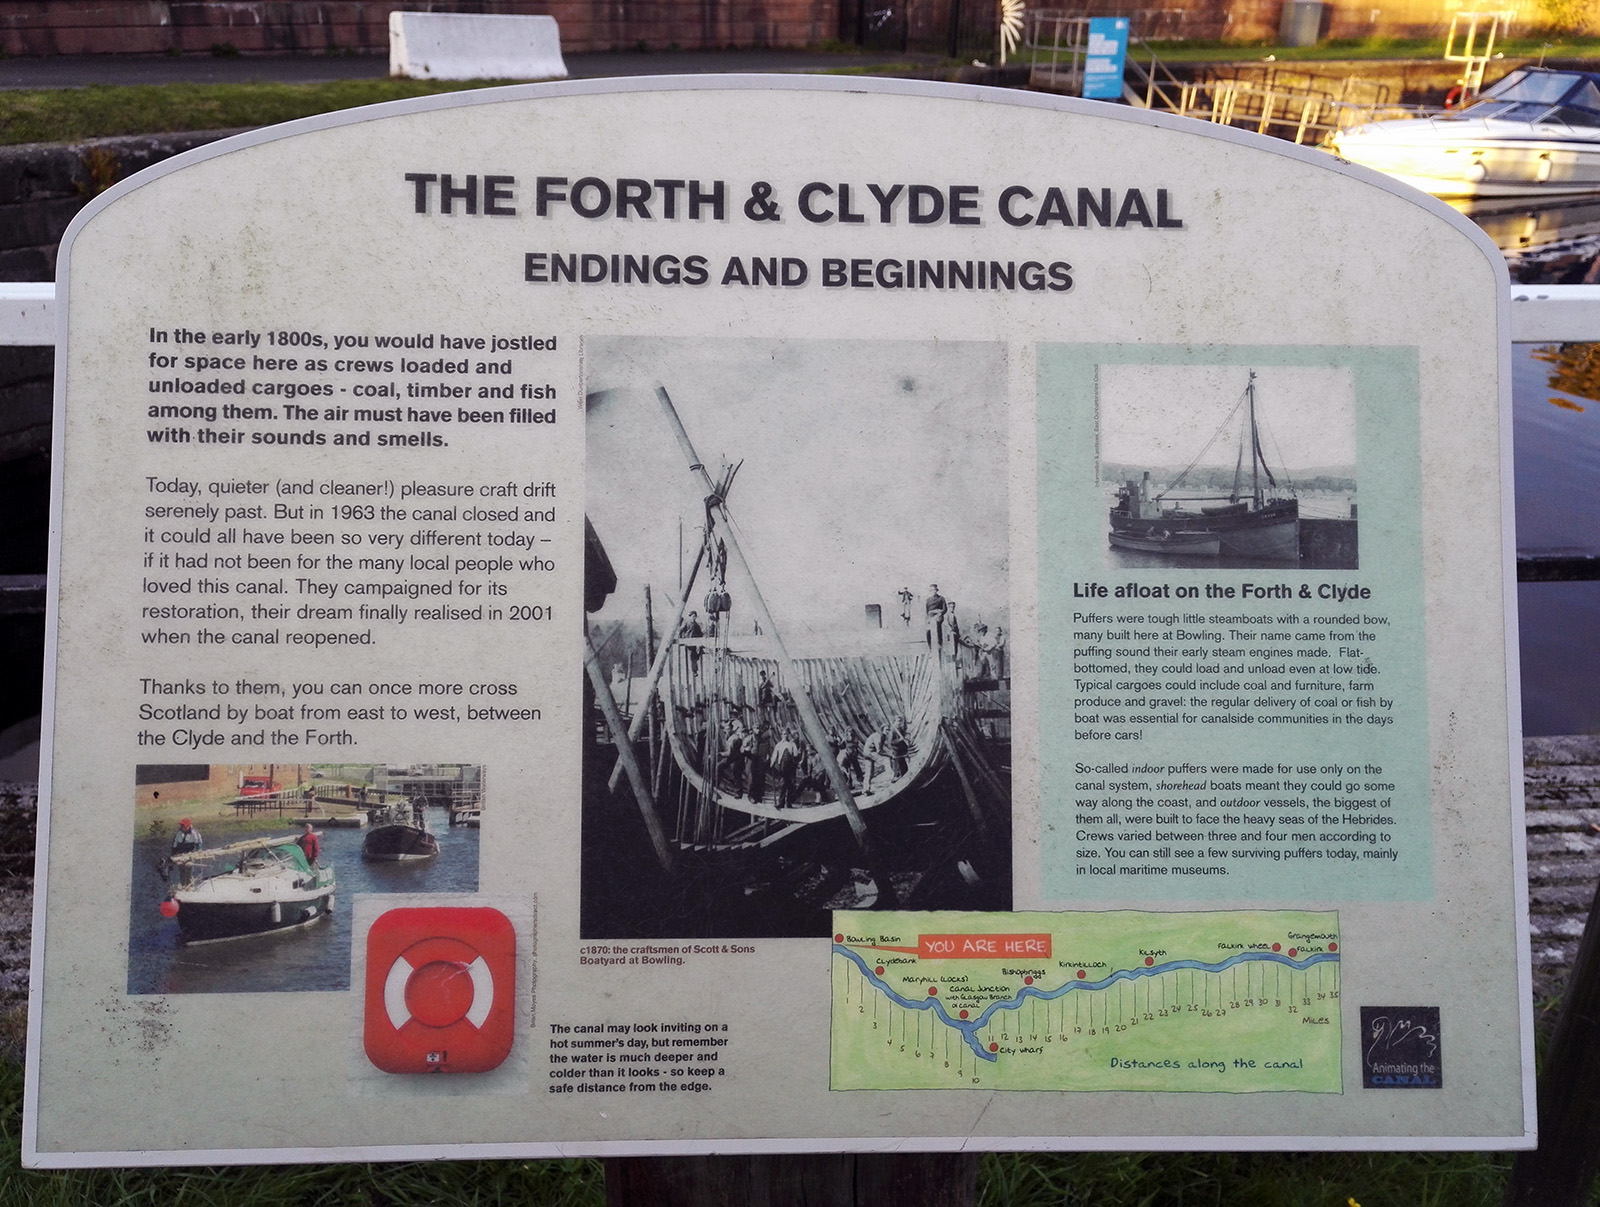 The Forth and Clyde Canal, Scotland